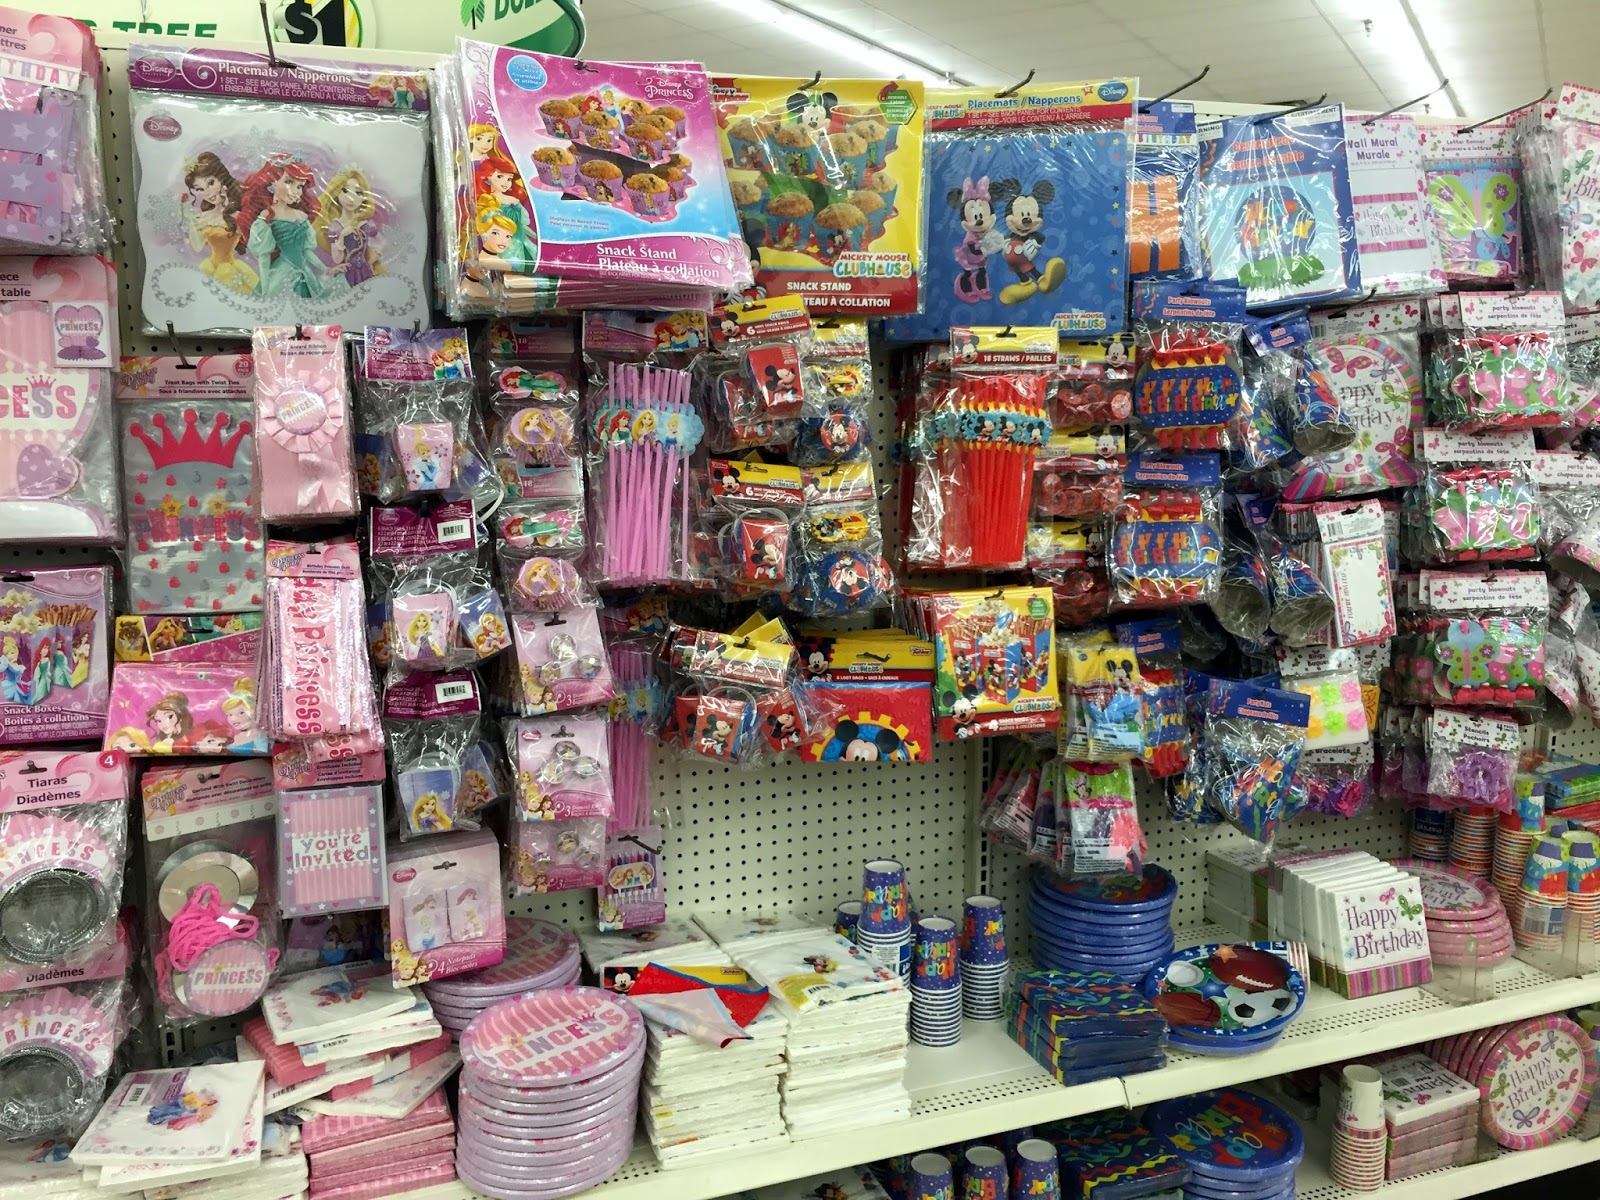 Products You Can Find Cheaper At The Dollar Store